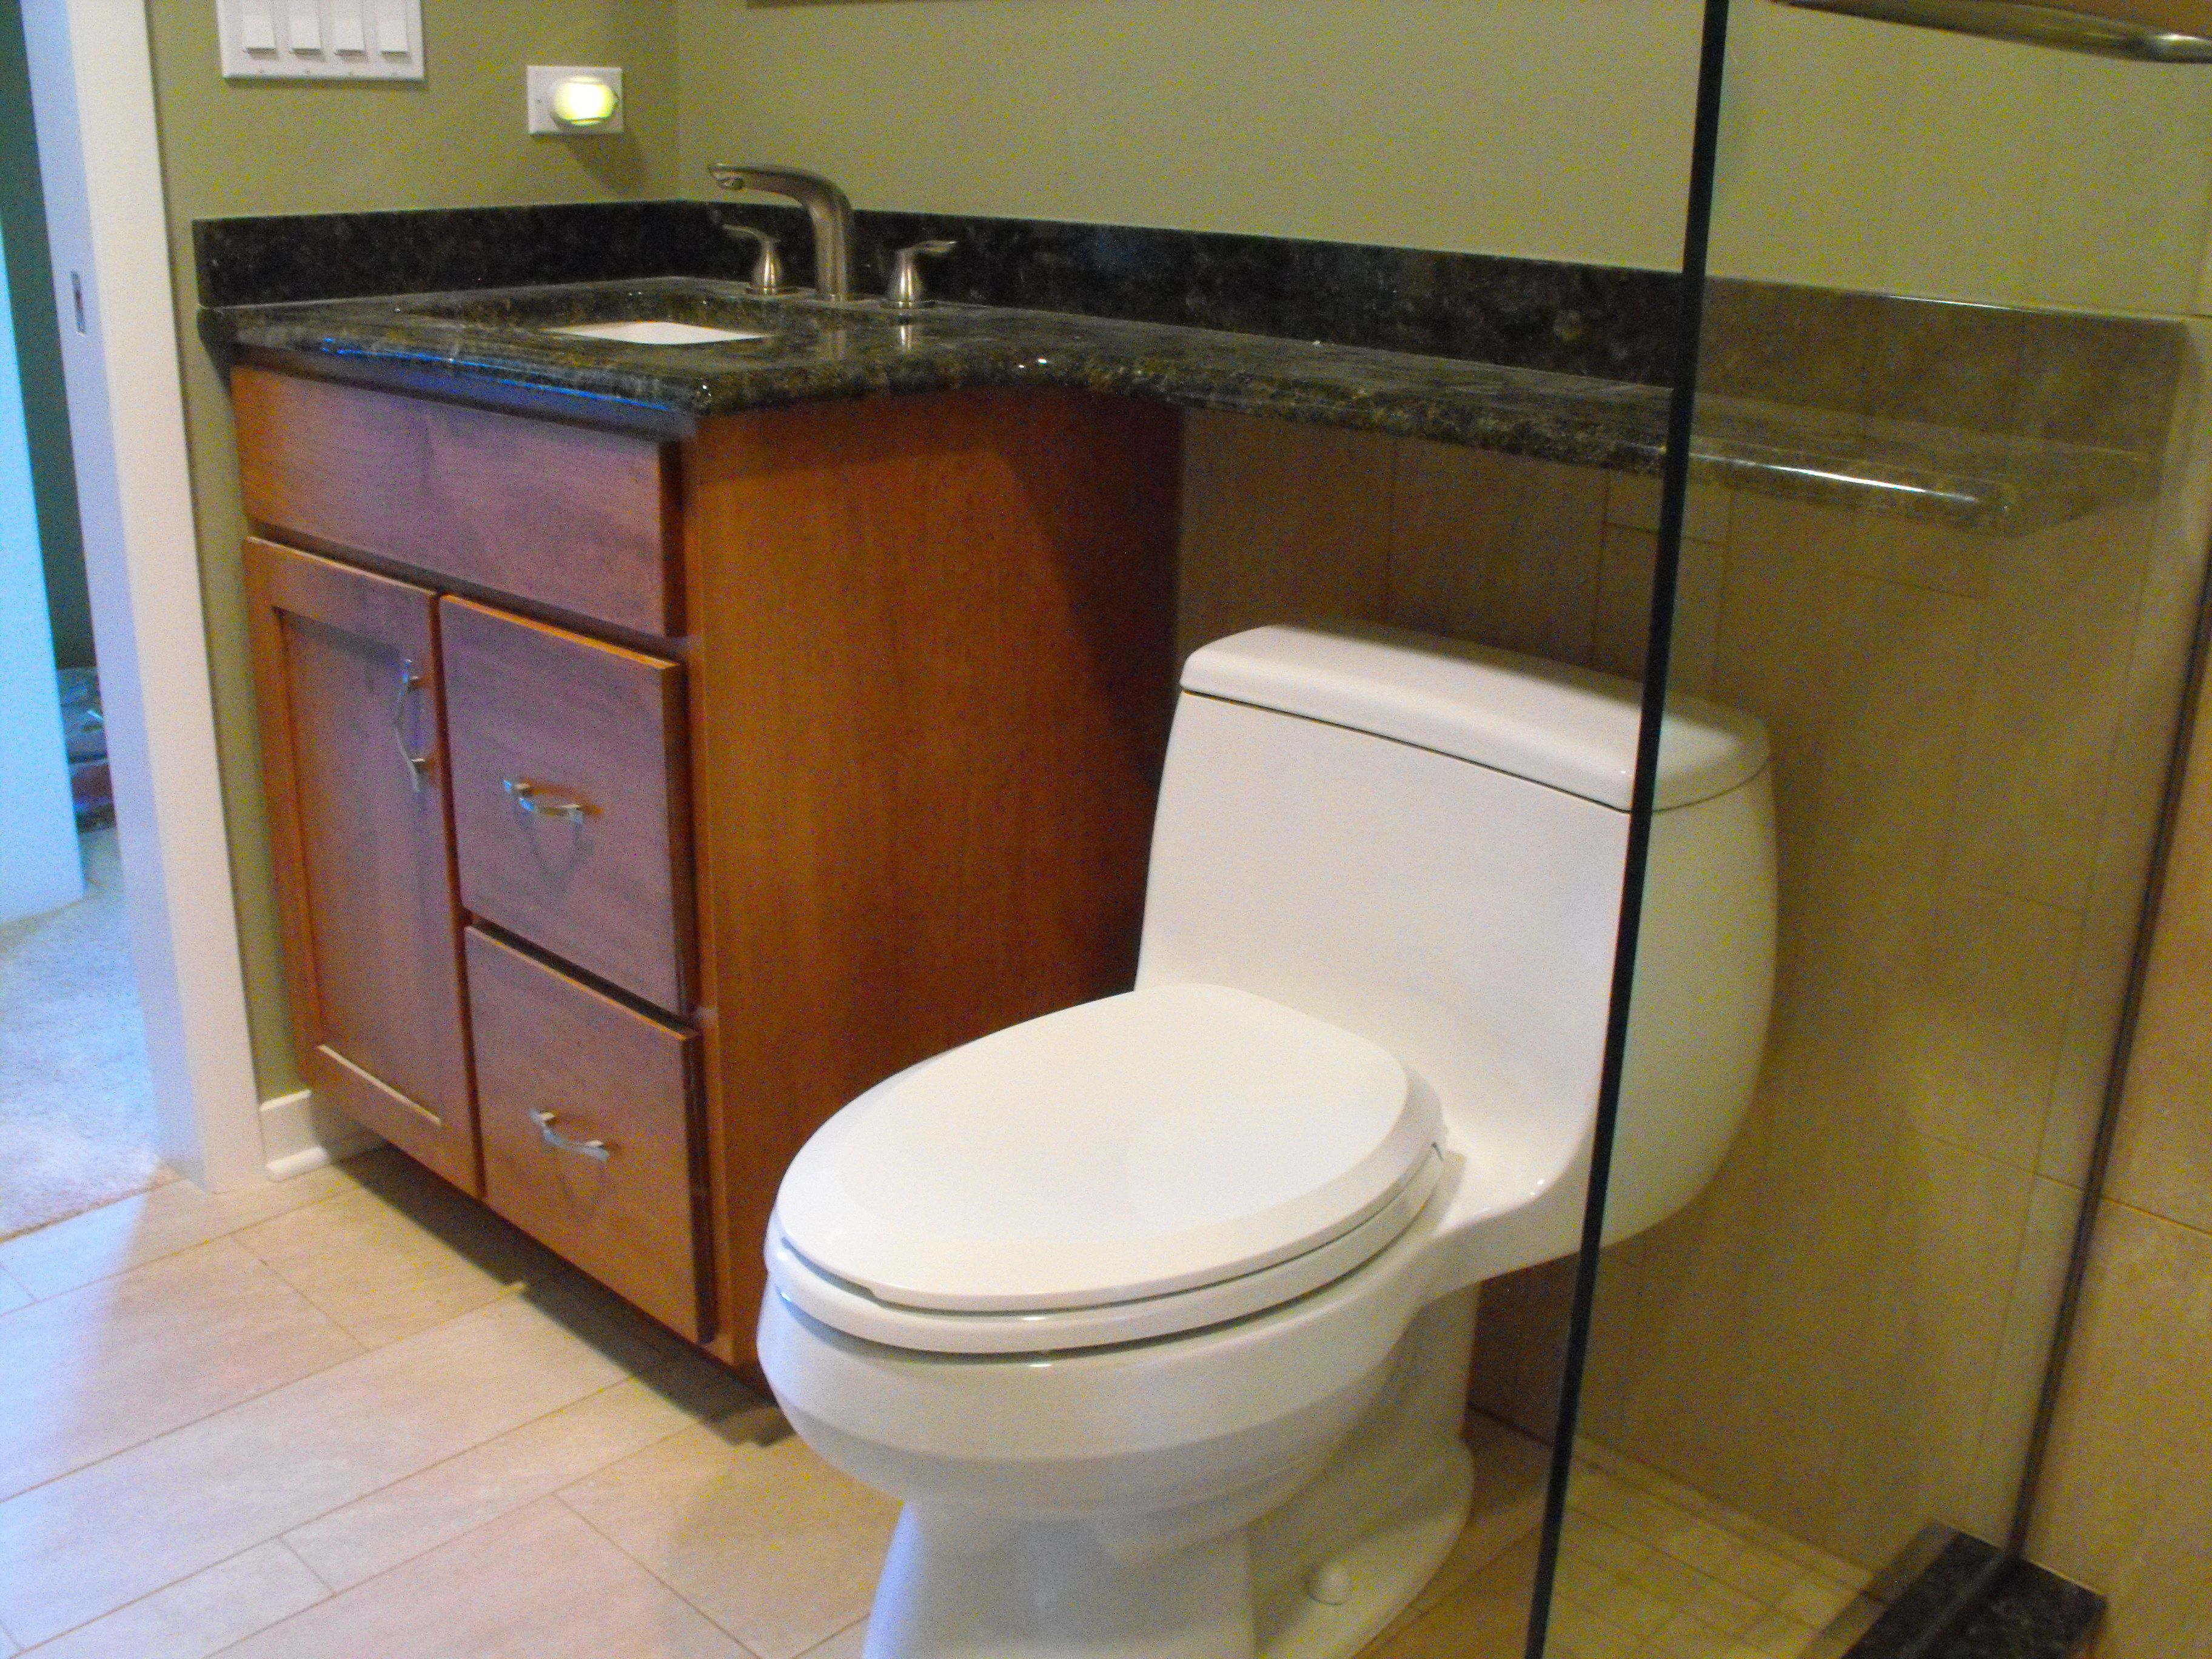 Over Toilet Ideas Bathroom: The Banjo Sink Top Extends Above The Toilet.